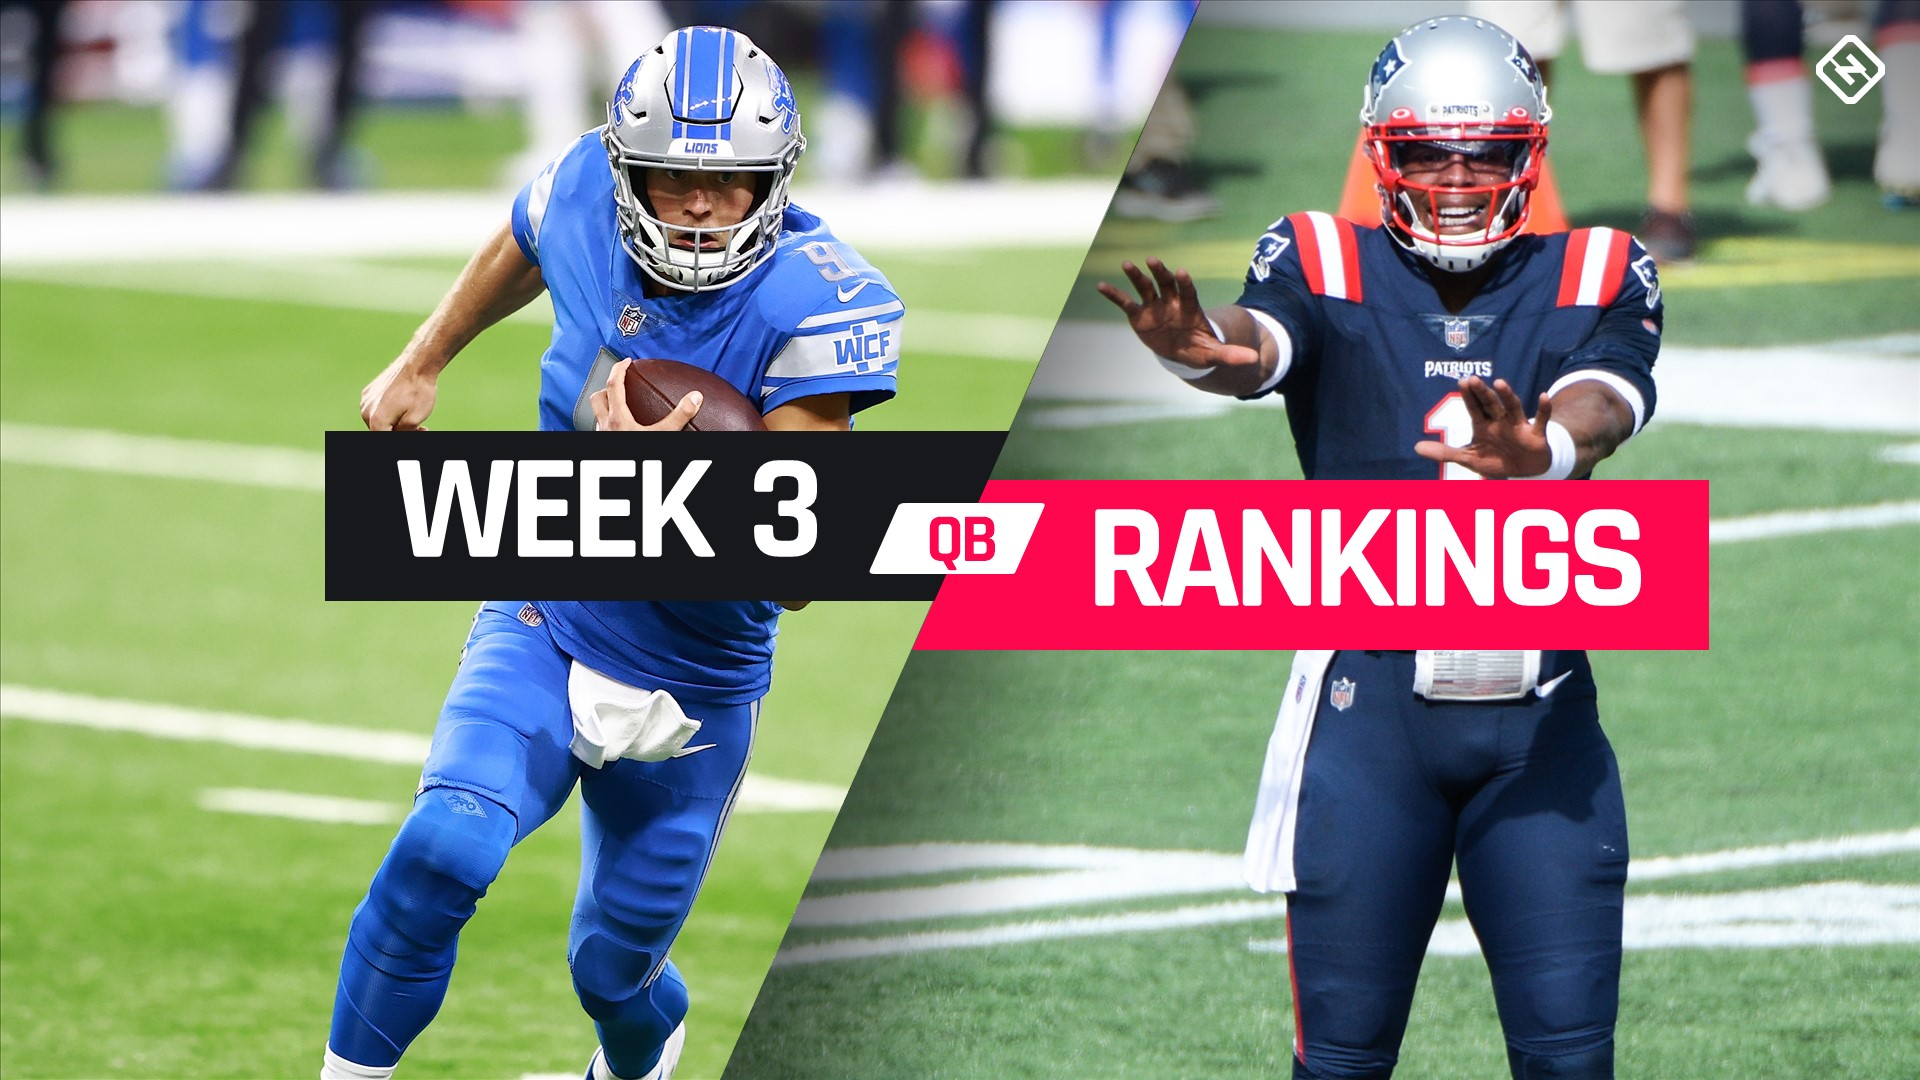 Week 3 Fantasy QB Rankings: Must-starts, sleepers, potential busts at quarterback...